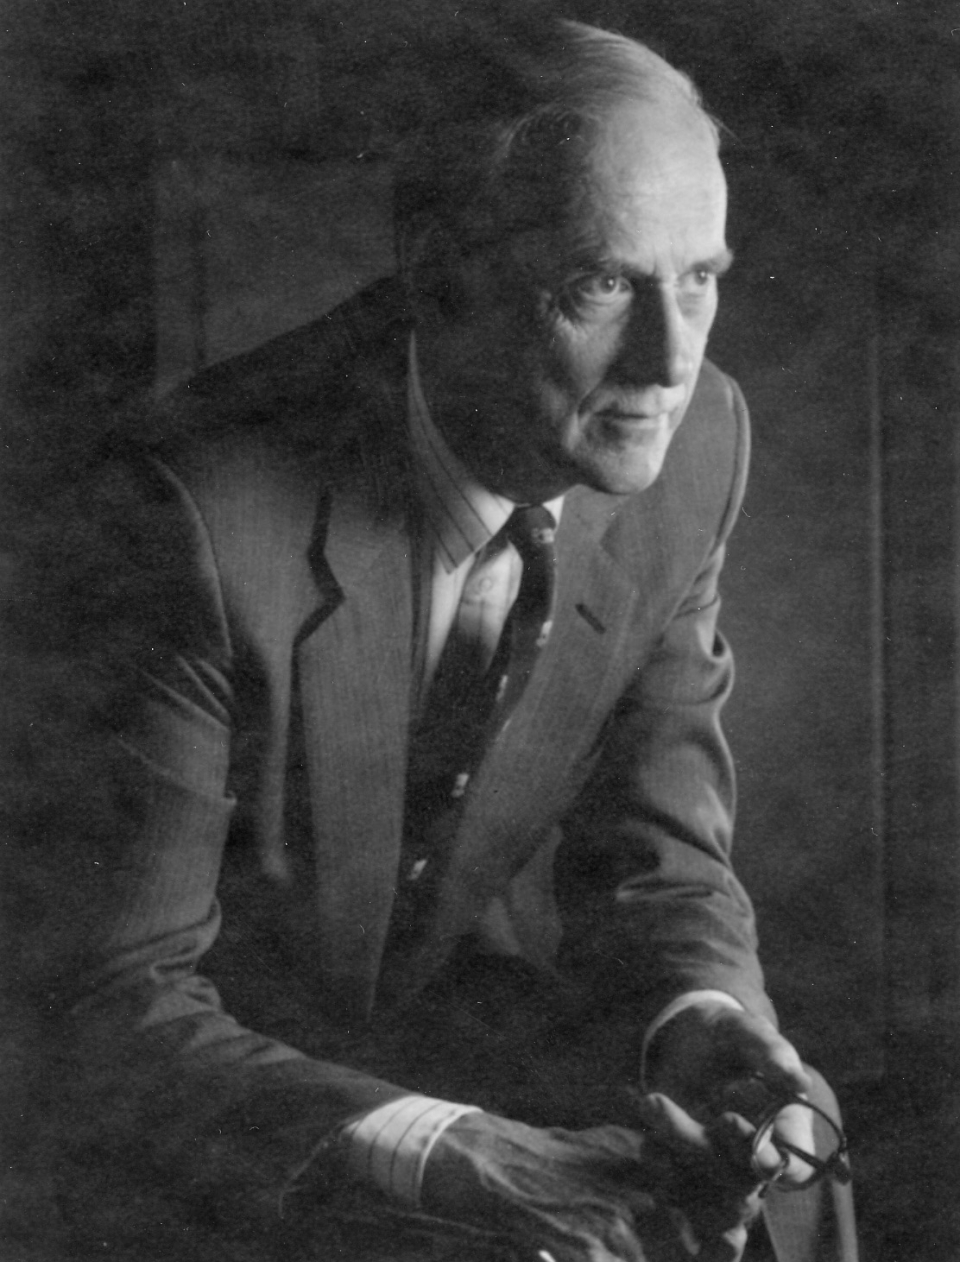 George Connell Chair 1965-1970, U. of T. President 1984-1990